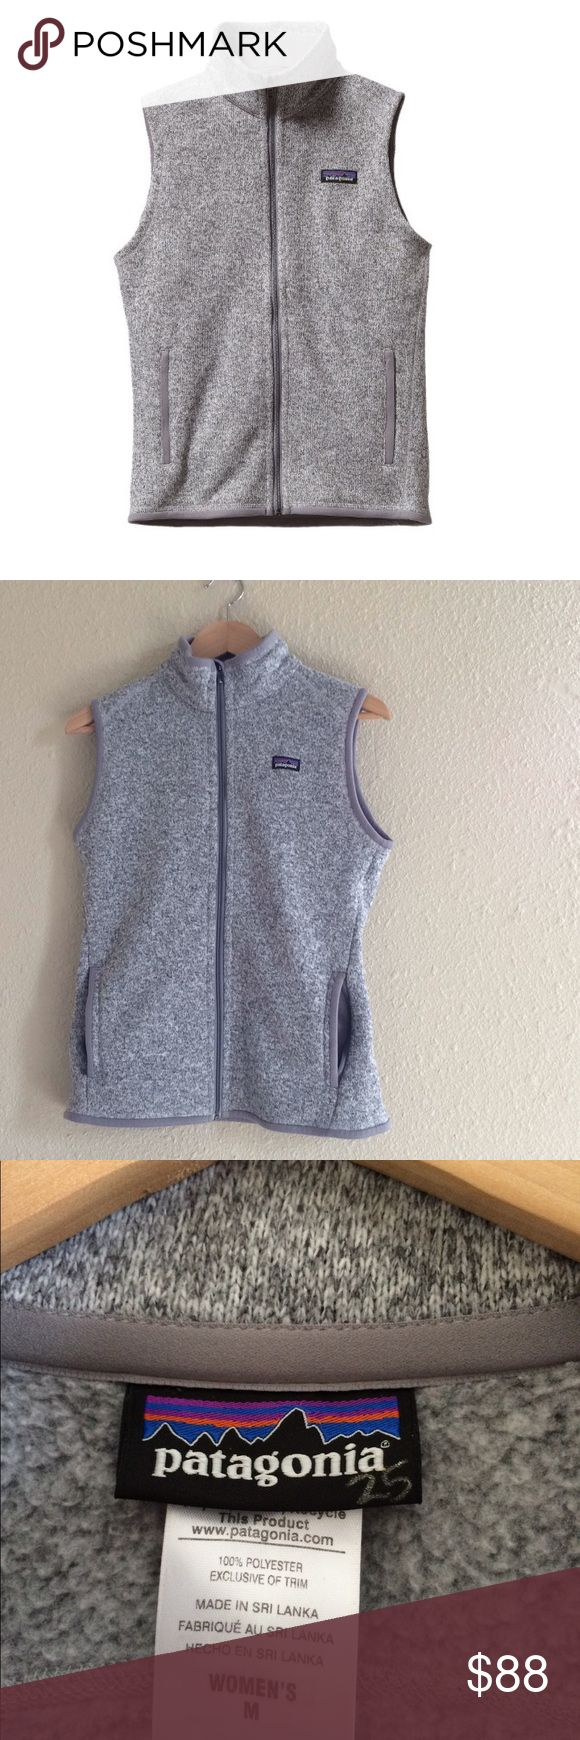 Patagonia better sweater vest birch white medium Patagonia better sweater vest in popular birch white (gray) size medium. Polyester fleece. Fair trade. This vest is in excellent, like new condition. This color never goes on sale. No piling, stain, or holes. Slim fit. Falls at waist. Price is flexible - but please be reasonable with your offer. Patagonia Jackets & Coats Vests